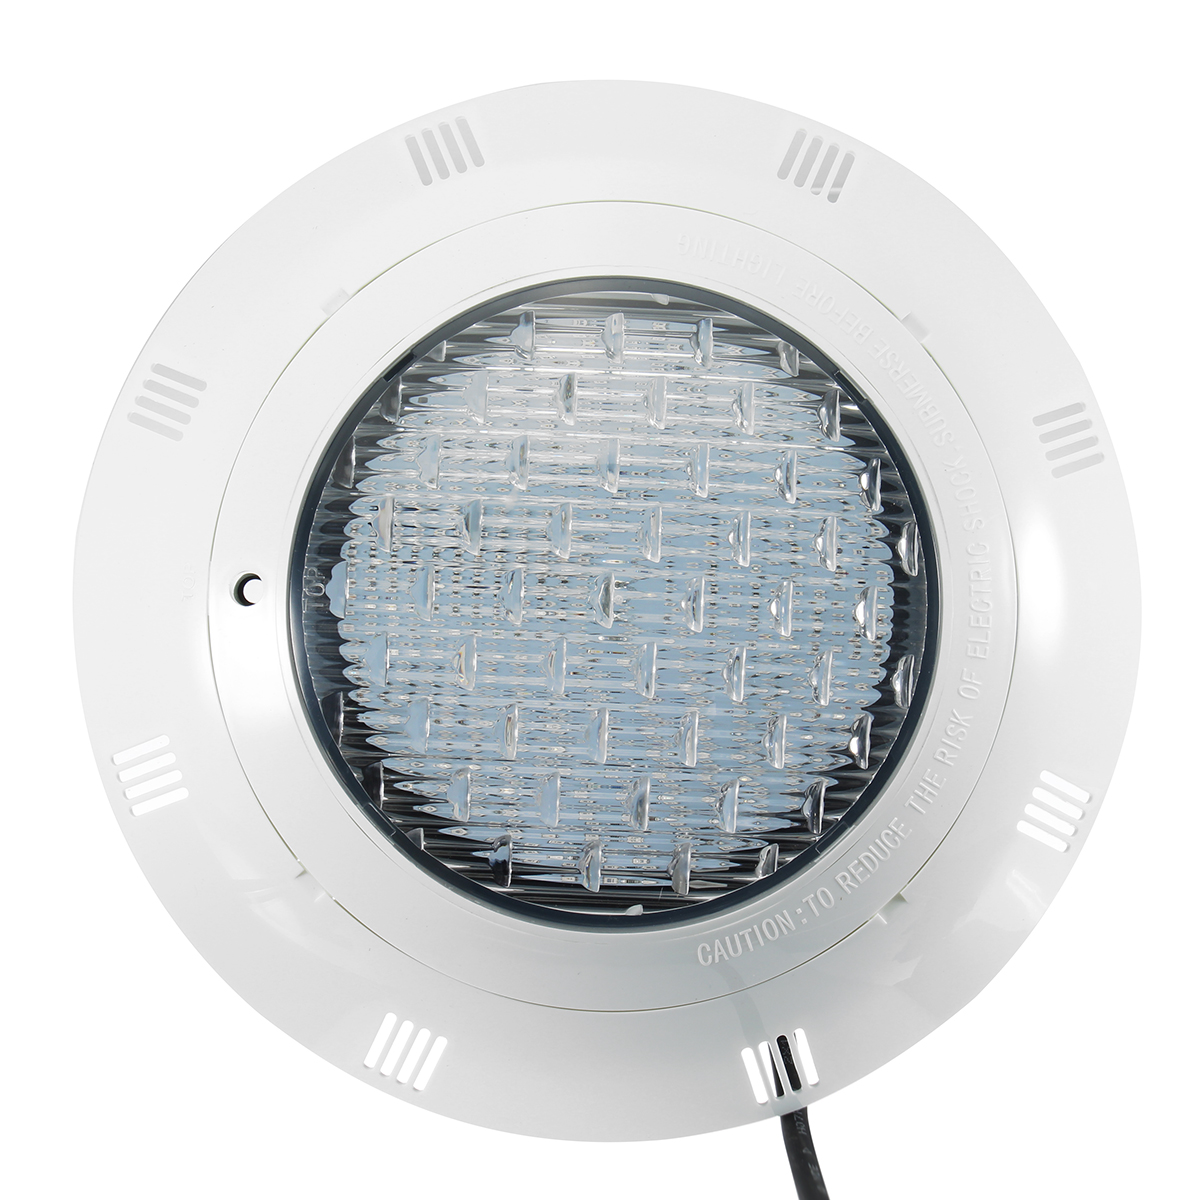 295mm AC12V 45W Swimming Pool Light IP68 45 LEDs Wall Mounted Power LED Outdoor Underwater Lighting 7 Colours RGB Remote Control iwhd american retro vintage pendant lights fixtures edison loft industrial pendant lighting hanglamp lampen wrount iron